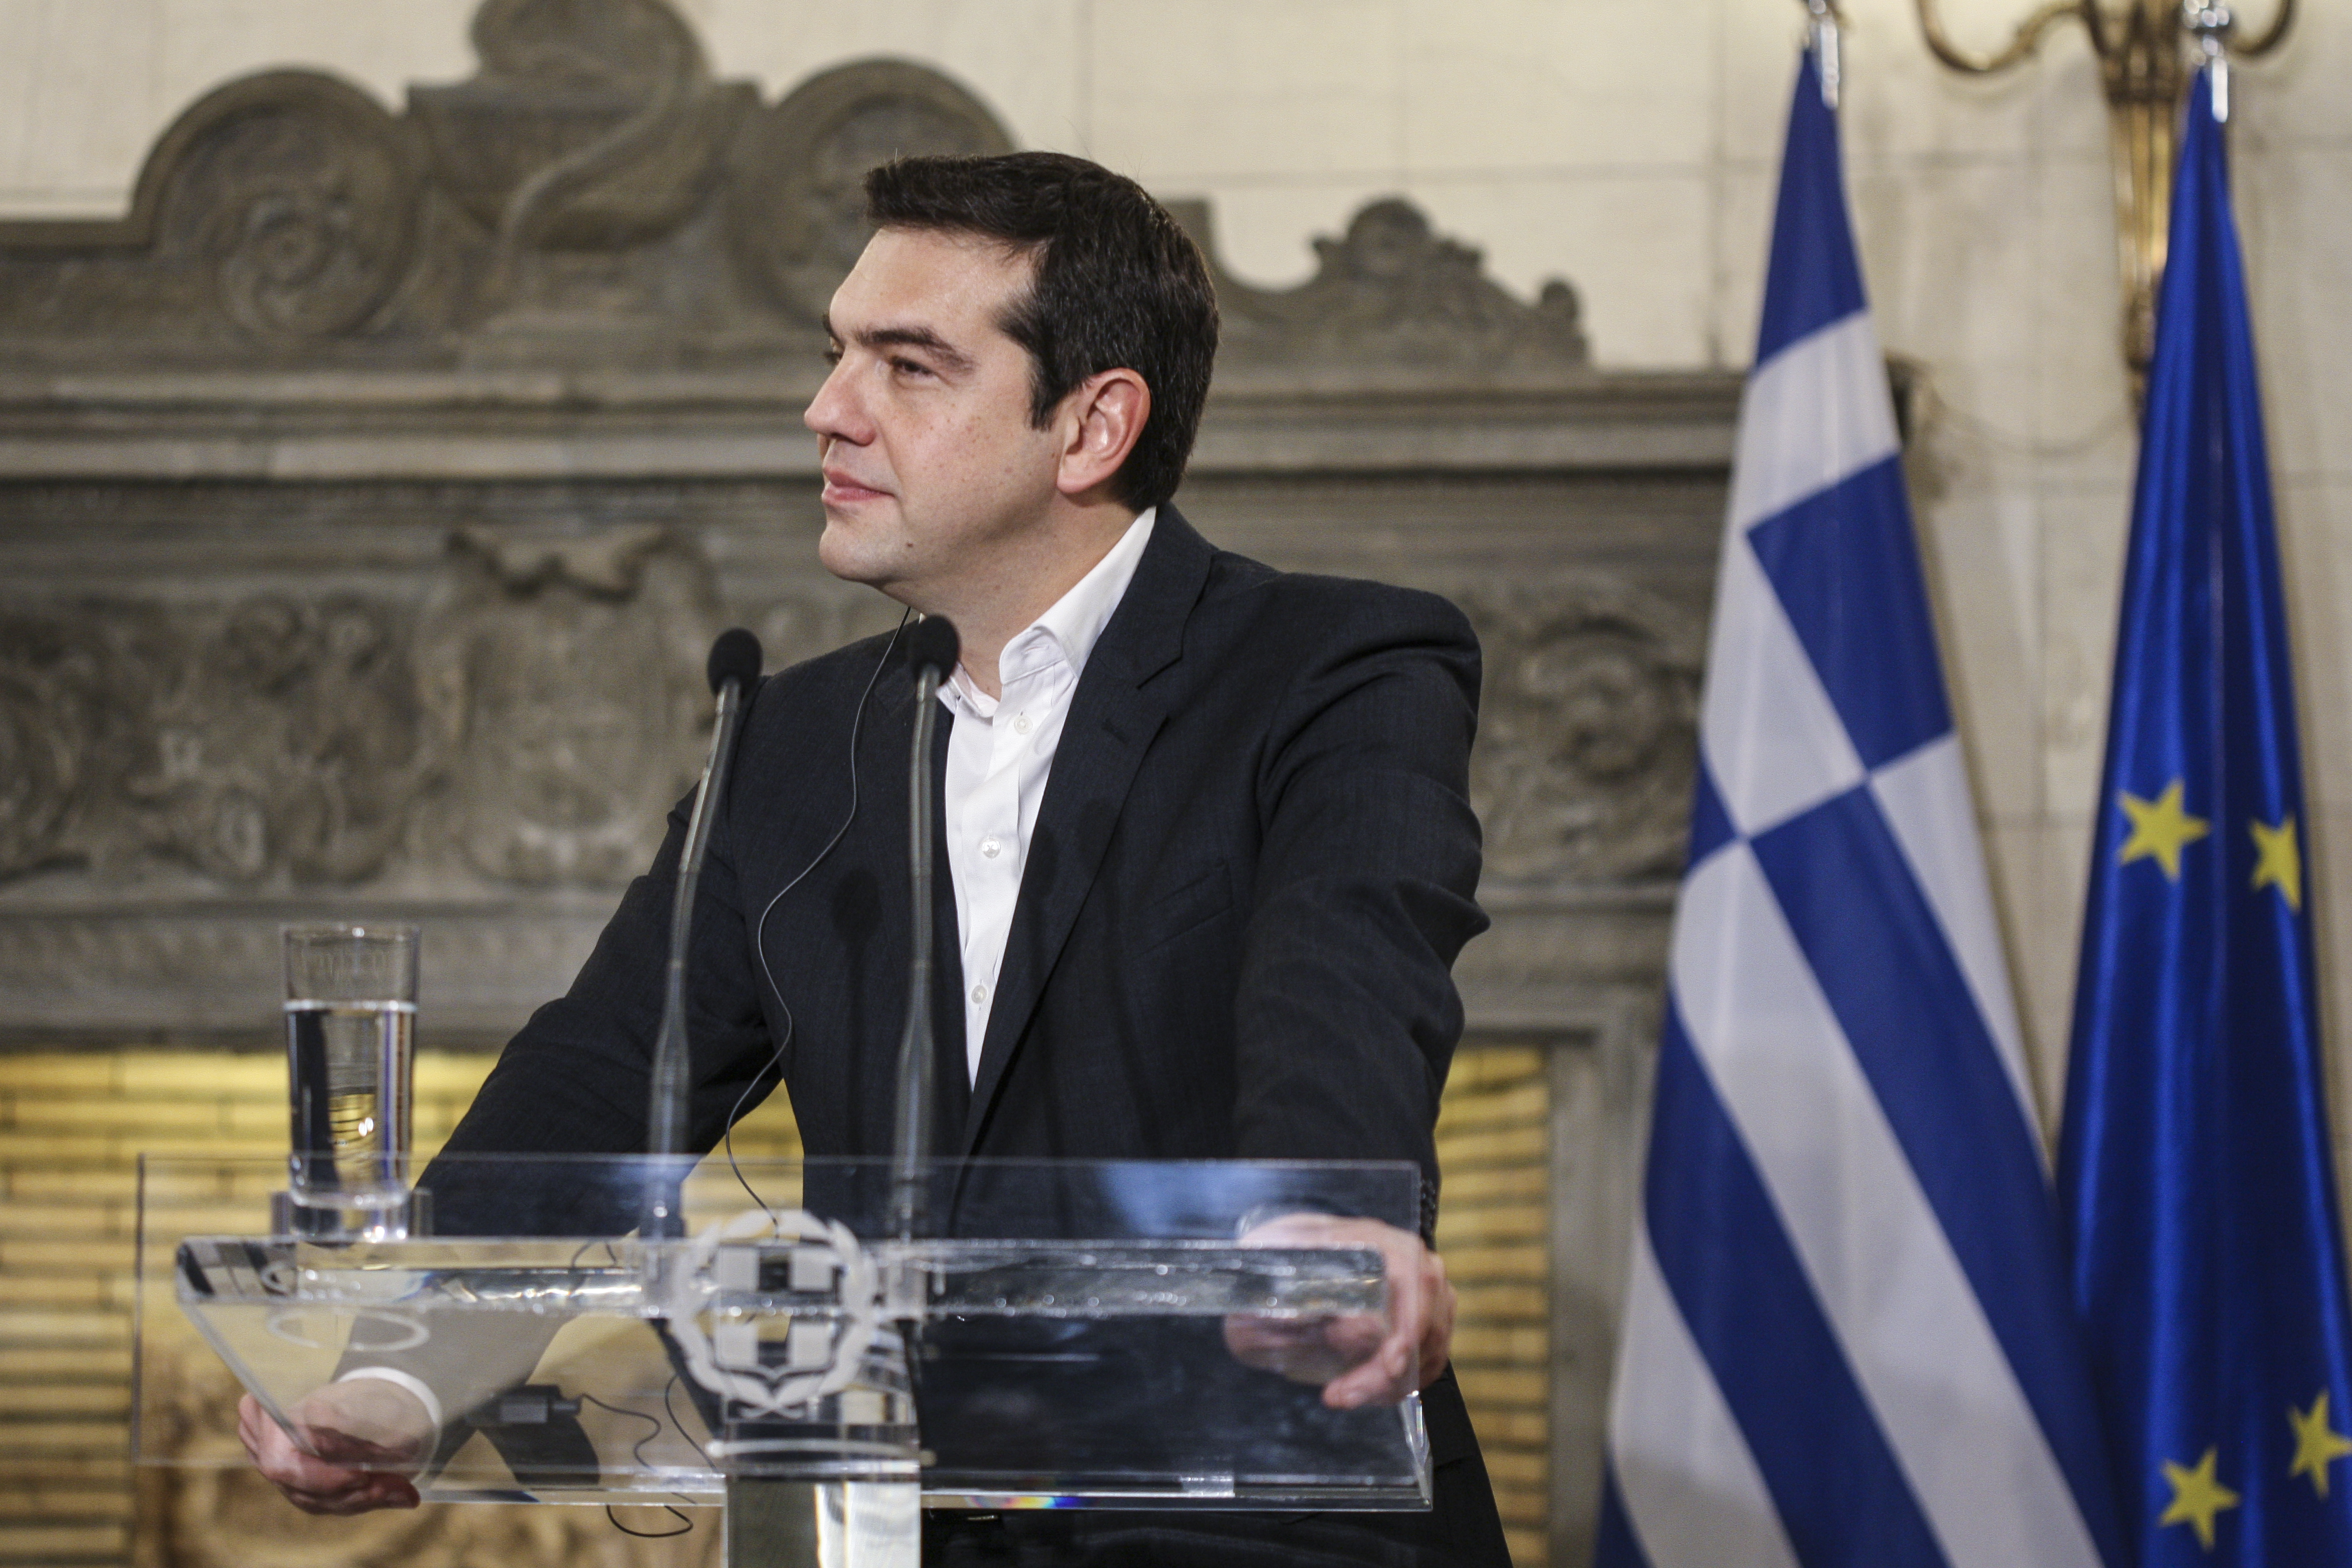 Tsipras: Not exactly an orphan in terms of international support.